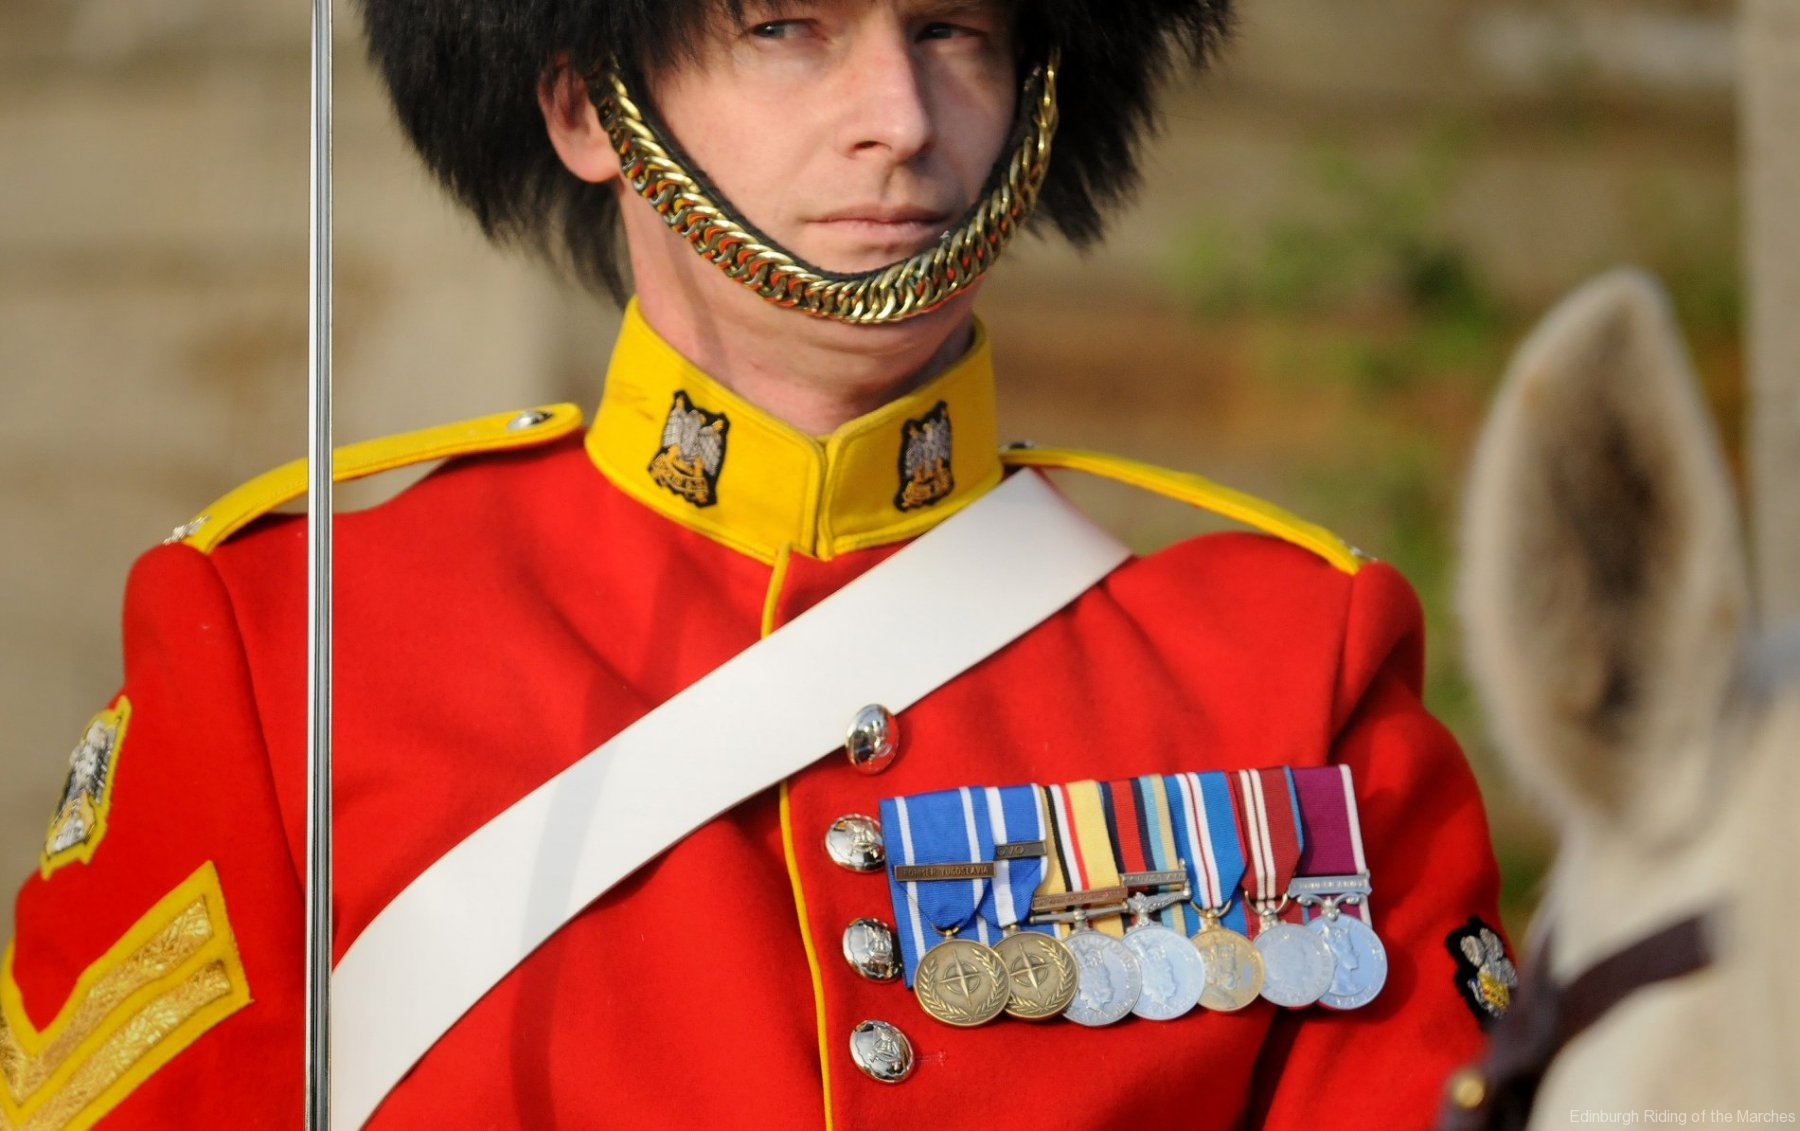 Mounted officer of Royal Scots Dragoon Guards